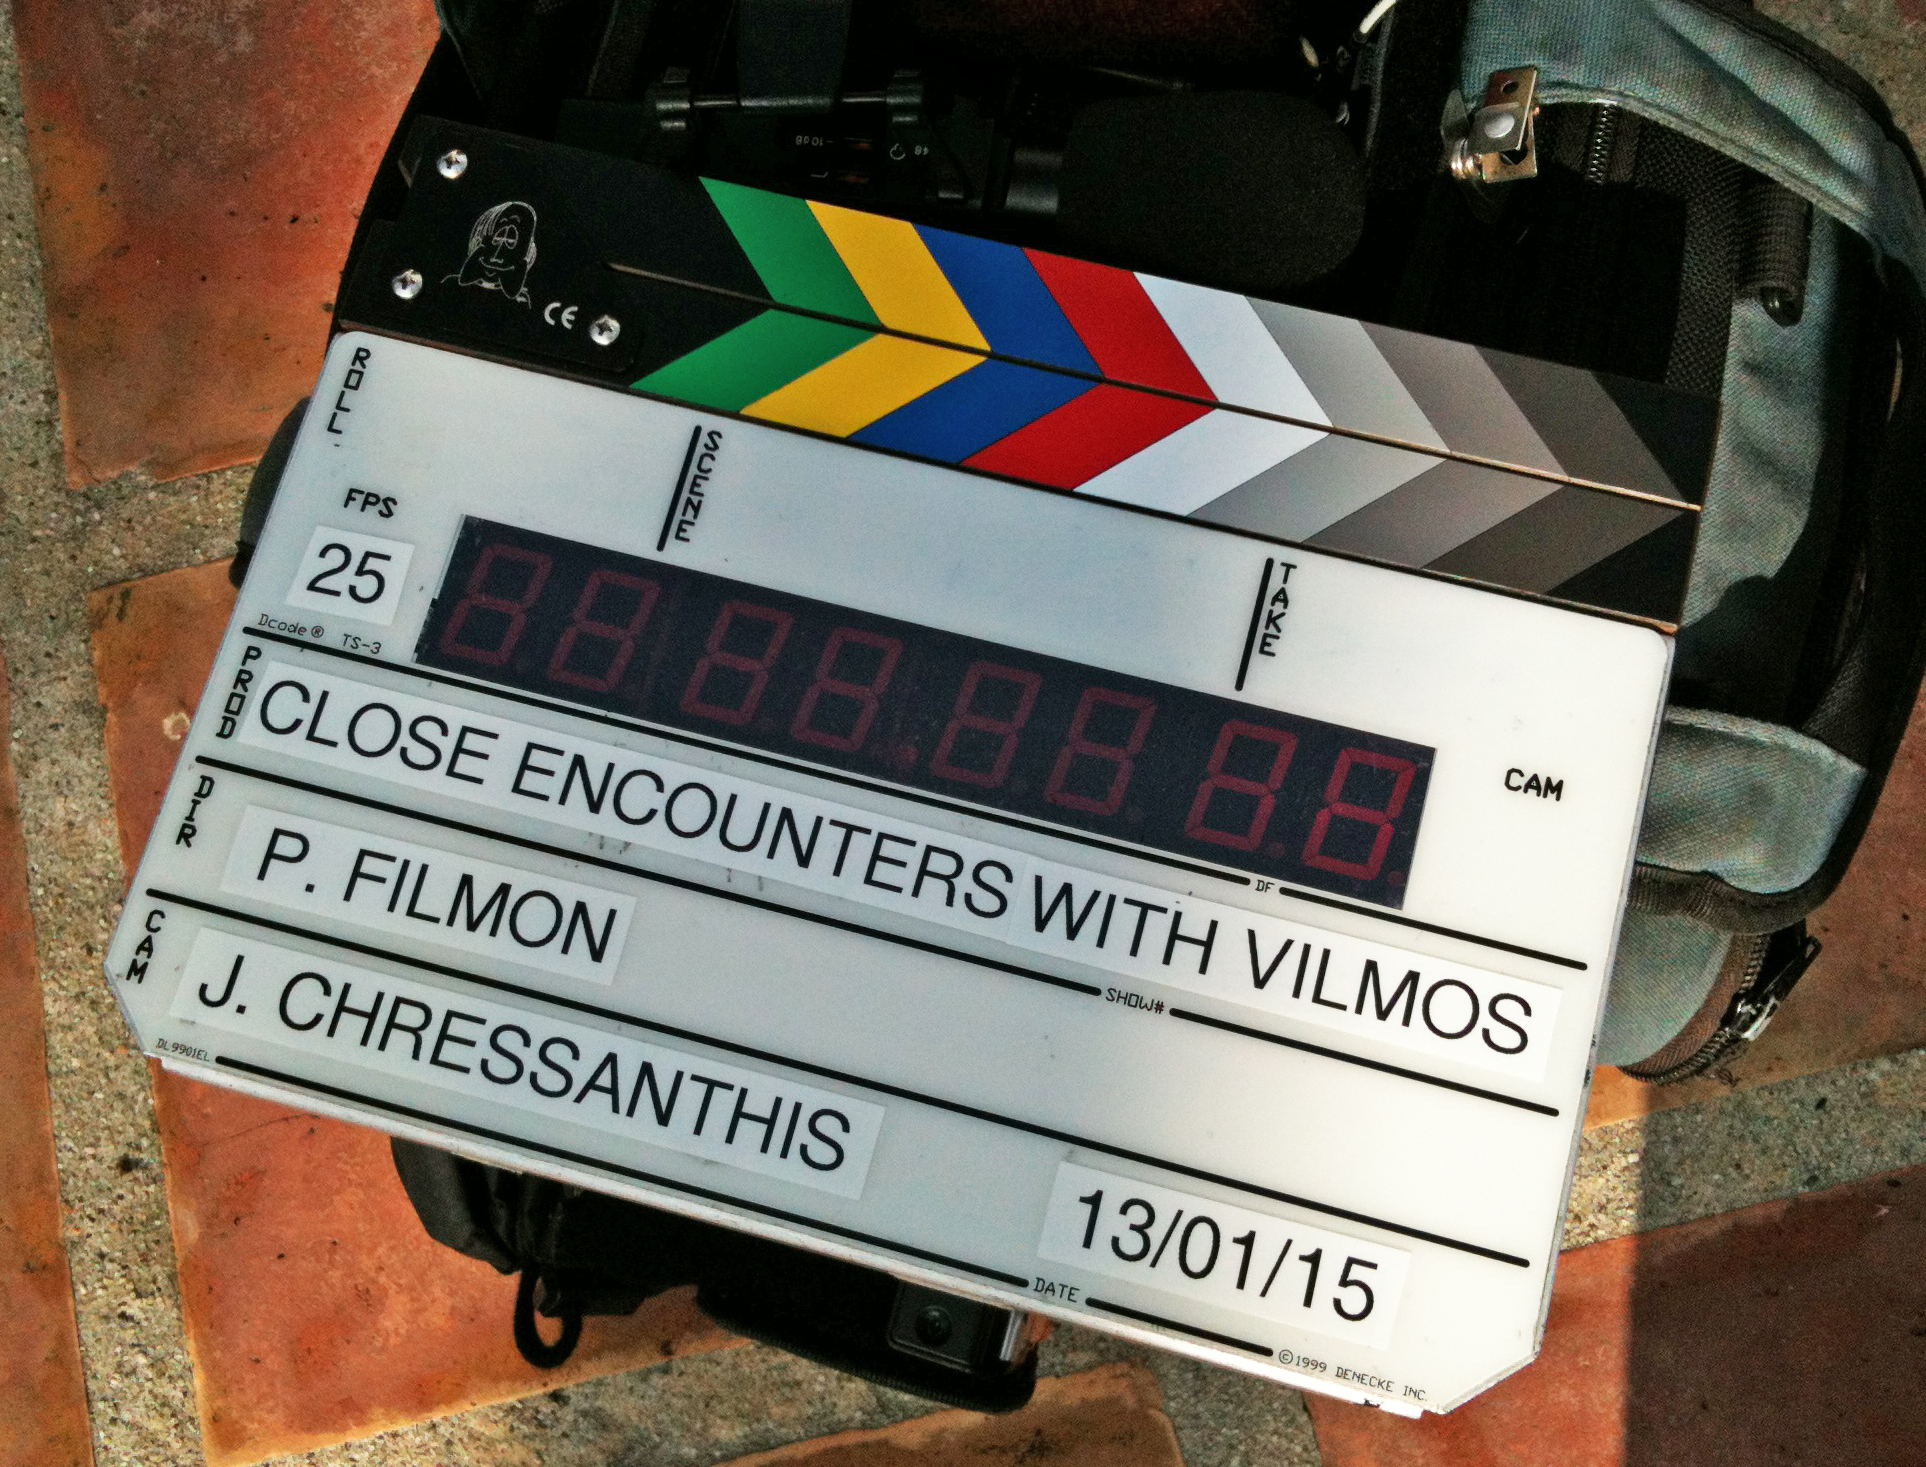 The slate at subject Peter Fonda's home, marking the first day of shooting in the U.S. Photo by the filmmaker